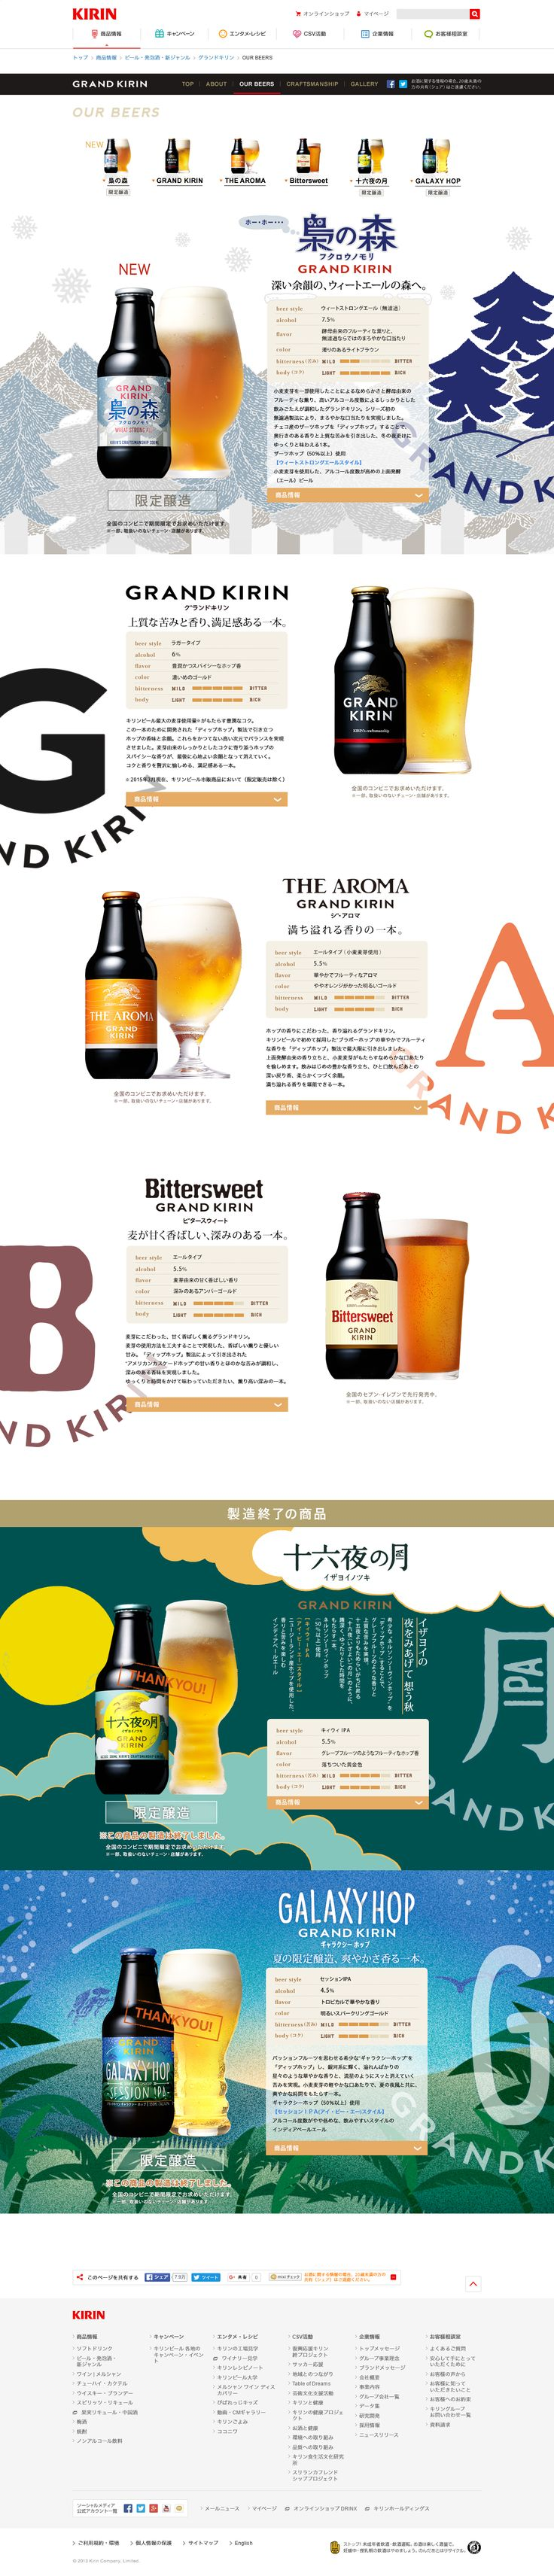 http://www.kirin.co.jp/products/beer/grandkirin/about/#gm